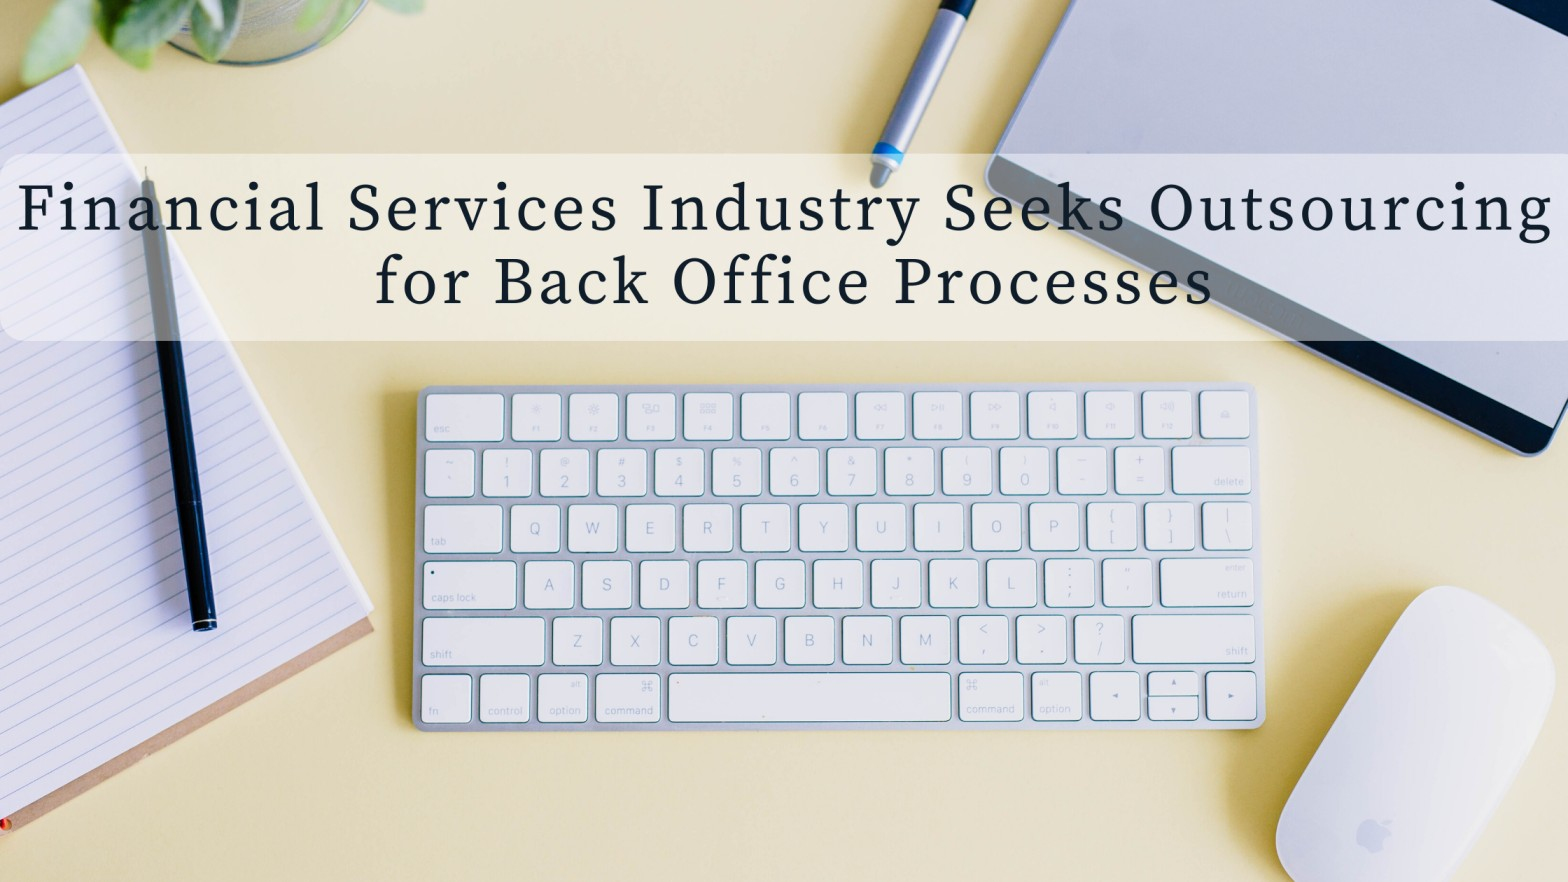 Financial Services Industry Seeks Outsourcing for Back Office Processes